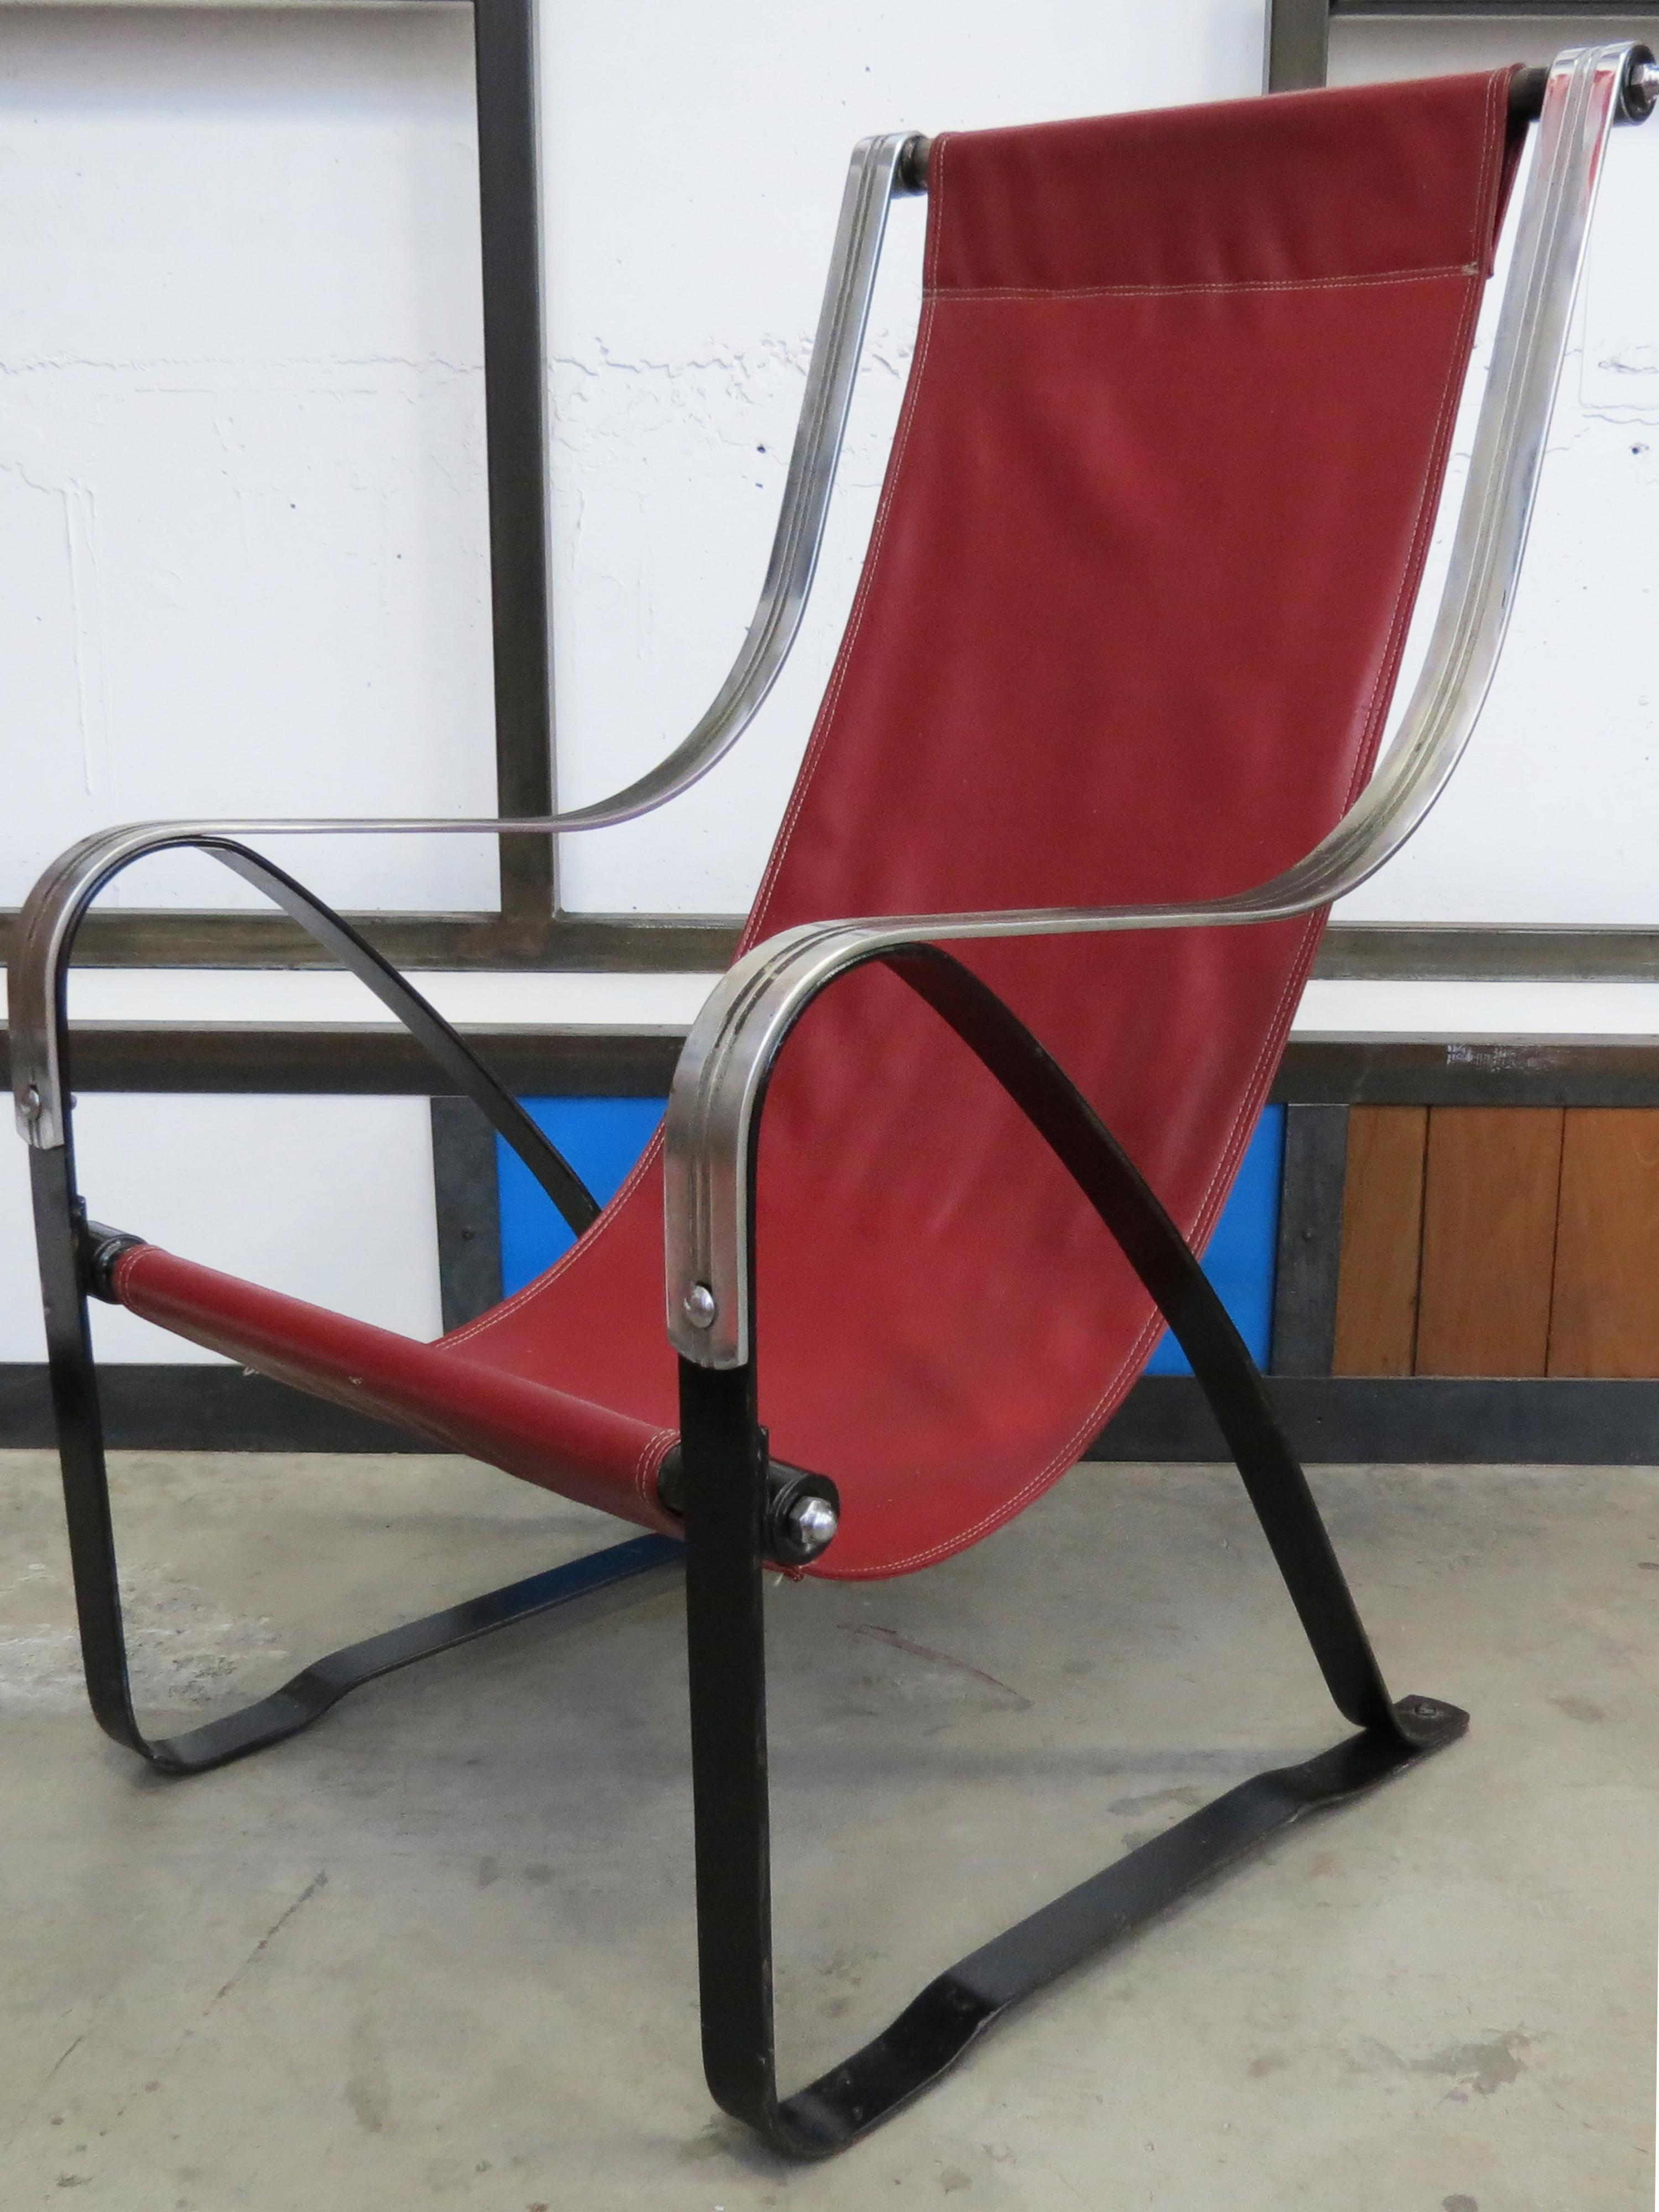 Genial McKay Furniture Corp. Vintage Art Deco Lounge Chairs   A Pair For Sale    Image